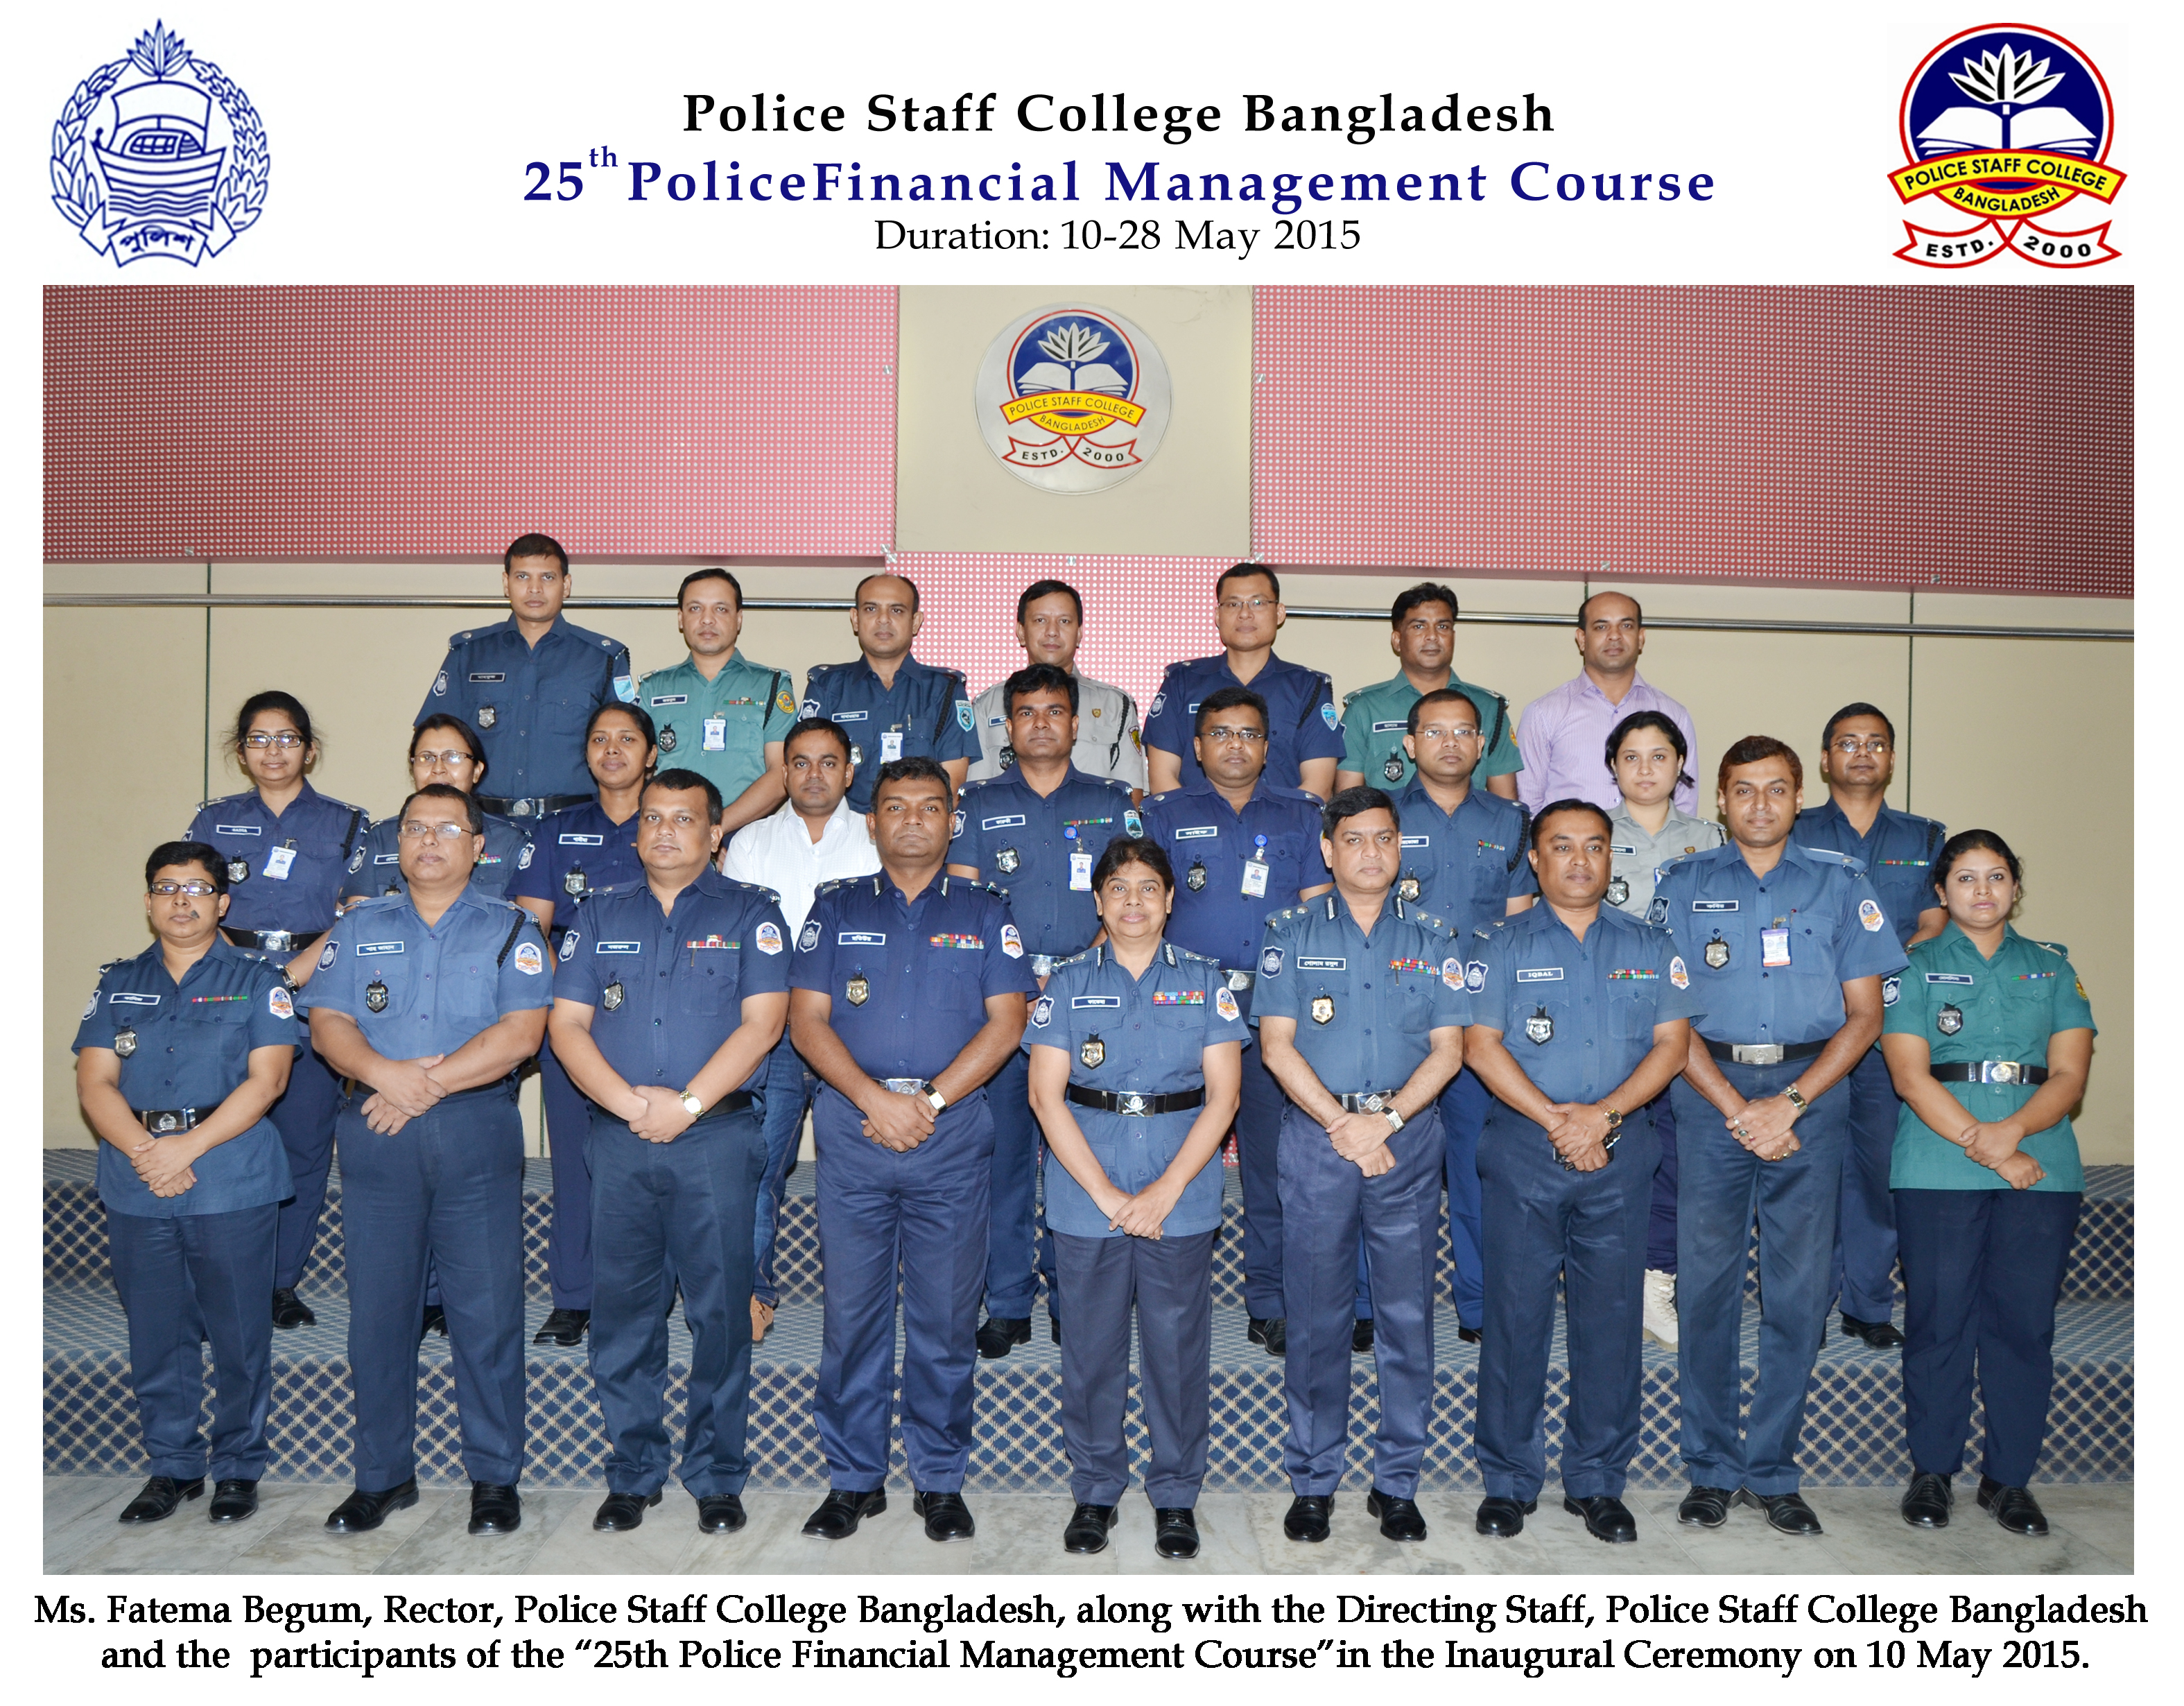 Participant of 25th Police Financial Management Certificate Course.